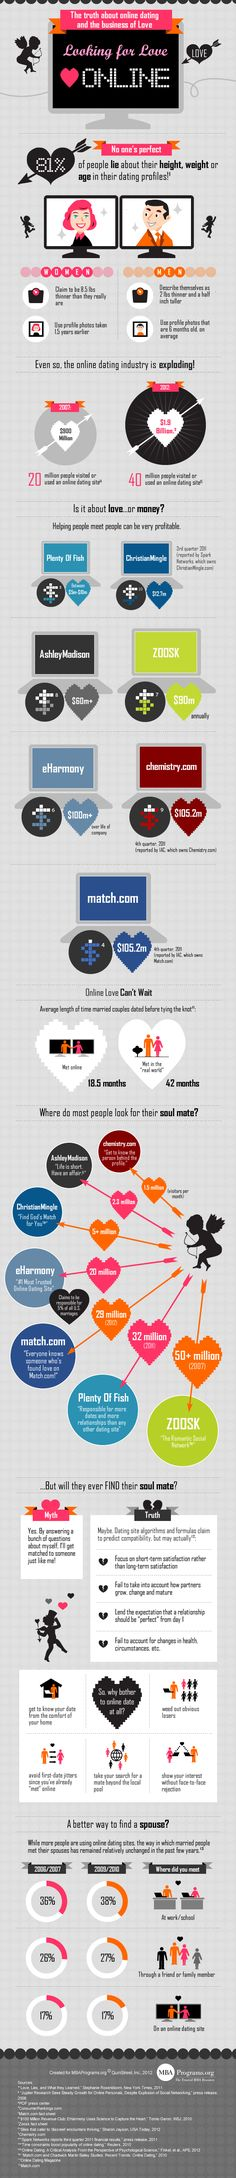 Looking for Love Online? The Truth About Online Dating & the Business of Love. Interesting comparison of online dating sites and the people who use them. Online Dating Statistics, Online Dating Profile, Marketing Digital, Online Marketing, Internet Marketing, Media Marketing, For Love Or Money, Dating World, Marca Personal